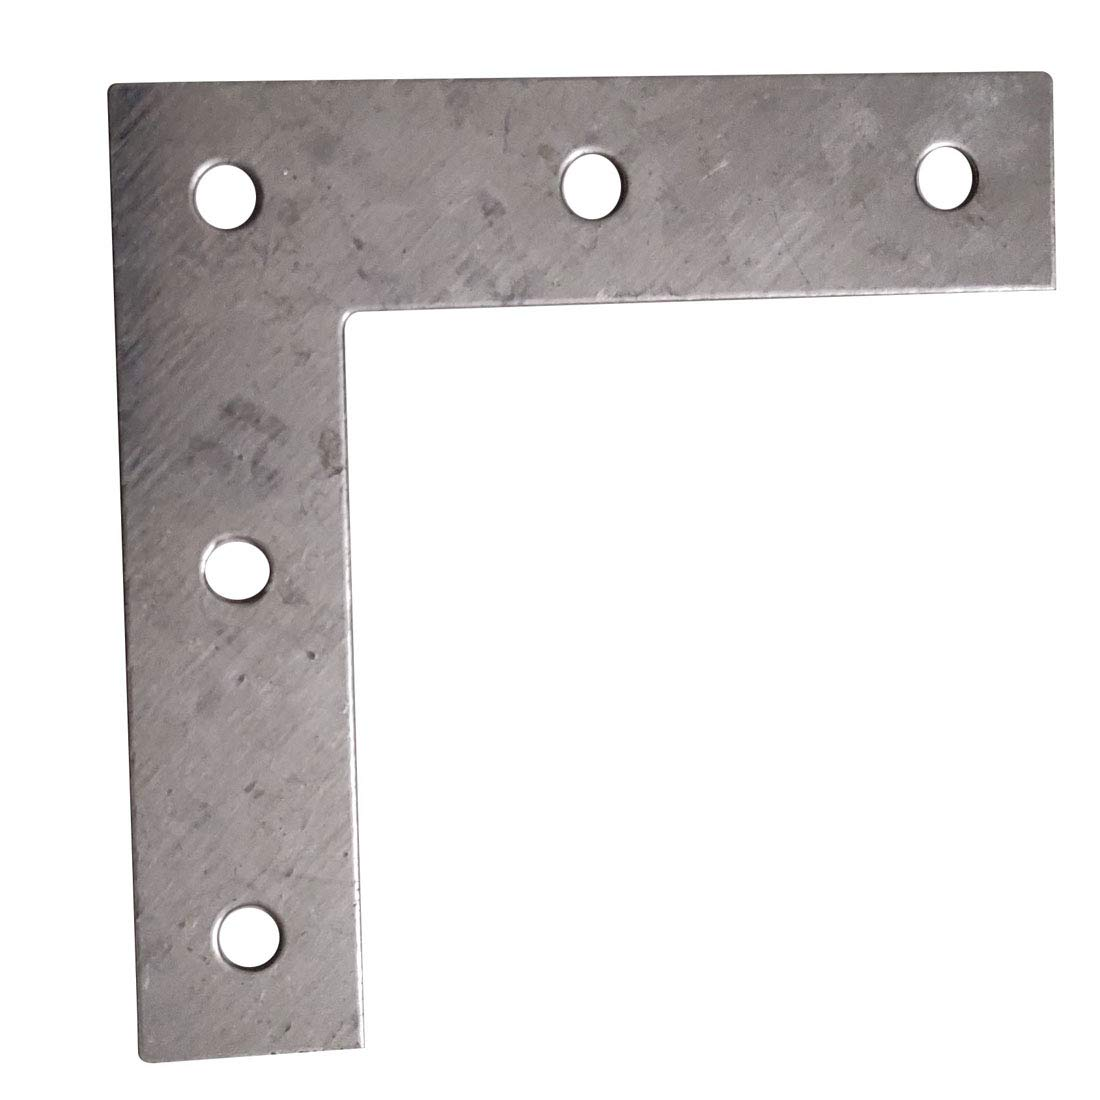 Sipery 4inch Flat Plated Corner Braces Bracket 90 Degree Joint Right Angle Bracket Fastener L Type 0.8mm Thickness 20Pcs for Repairing Wood Furniture Foshanshisipulaimaoyiyouxiangongsi